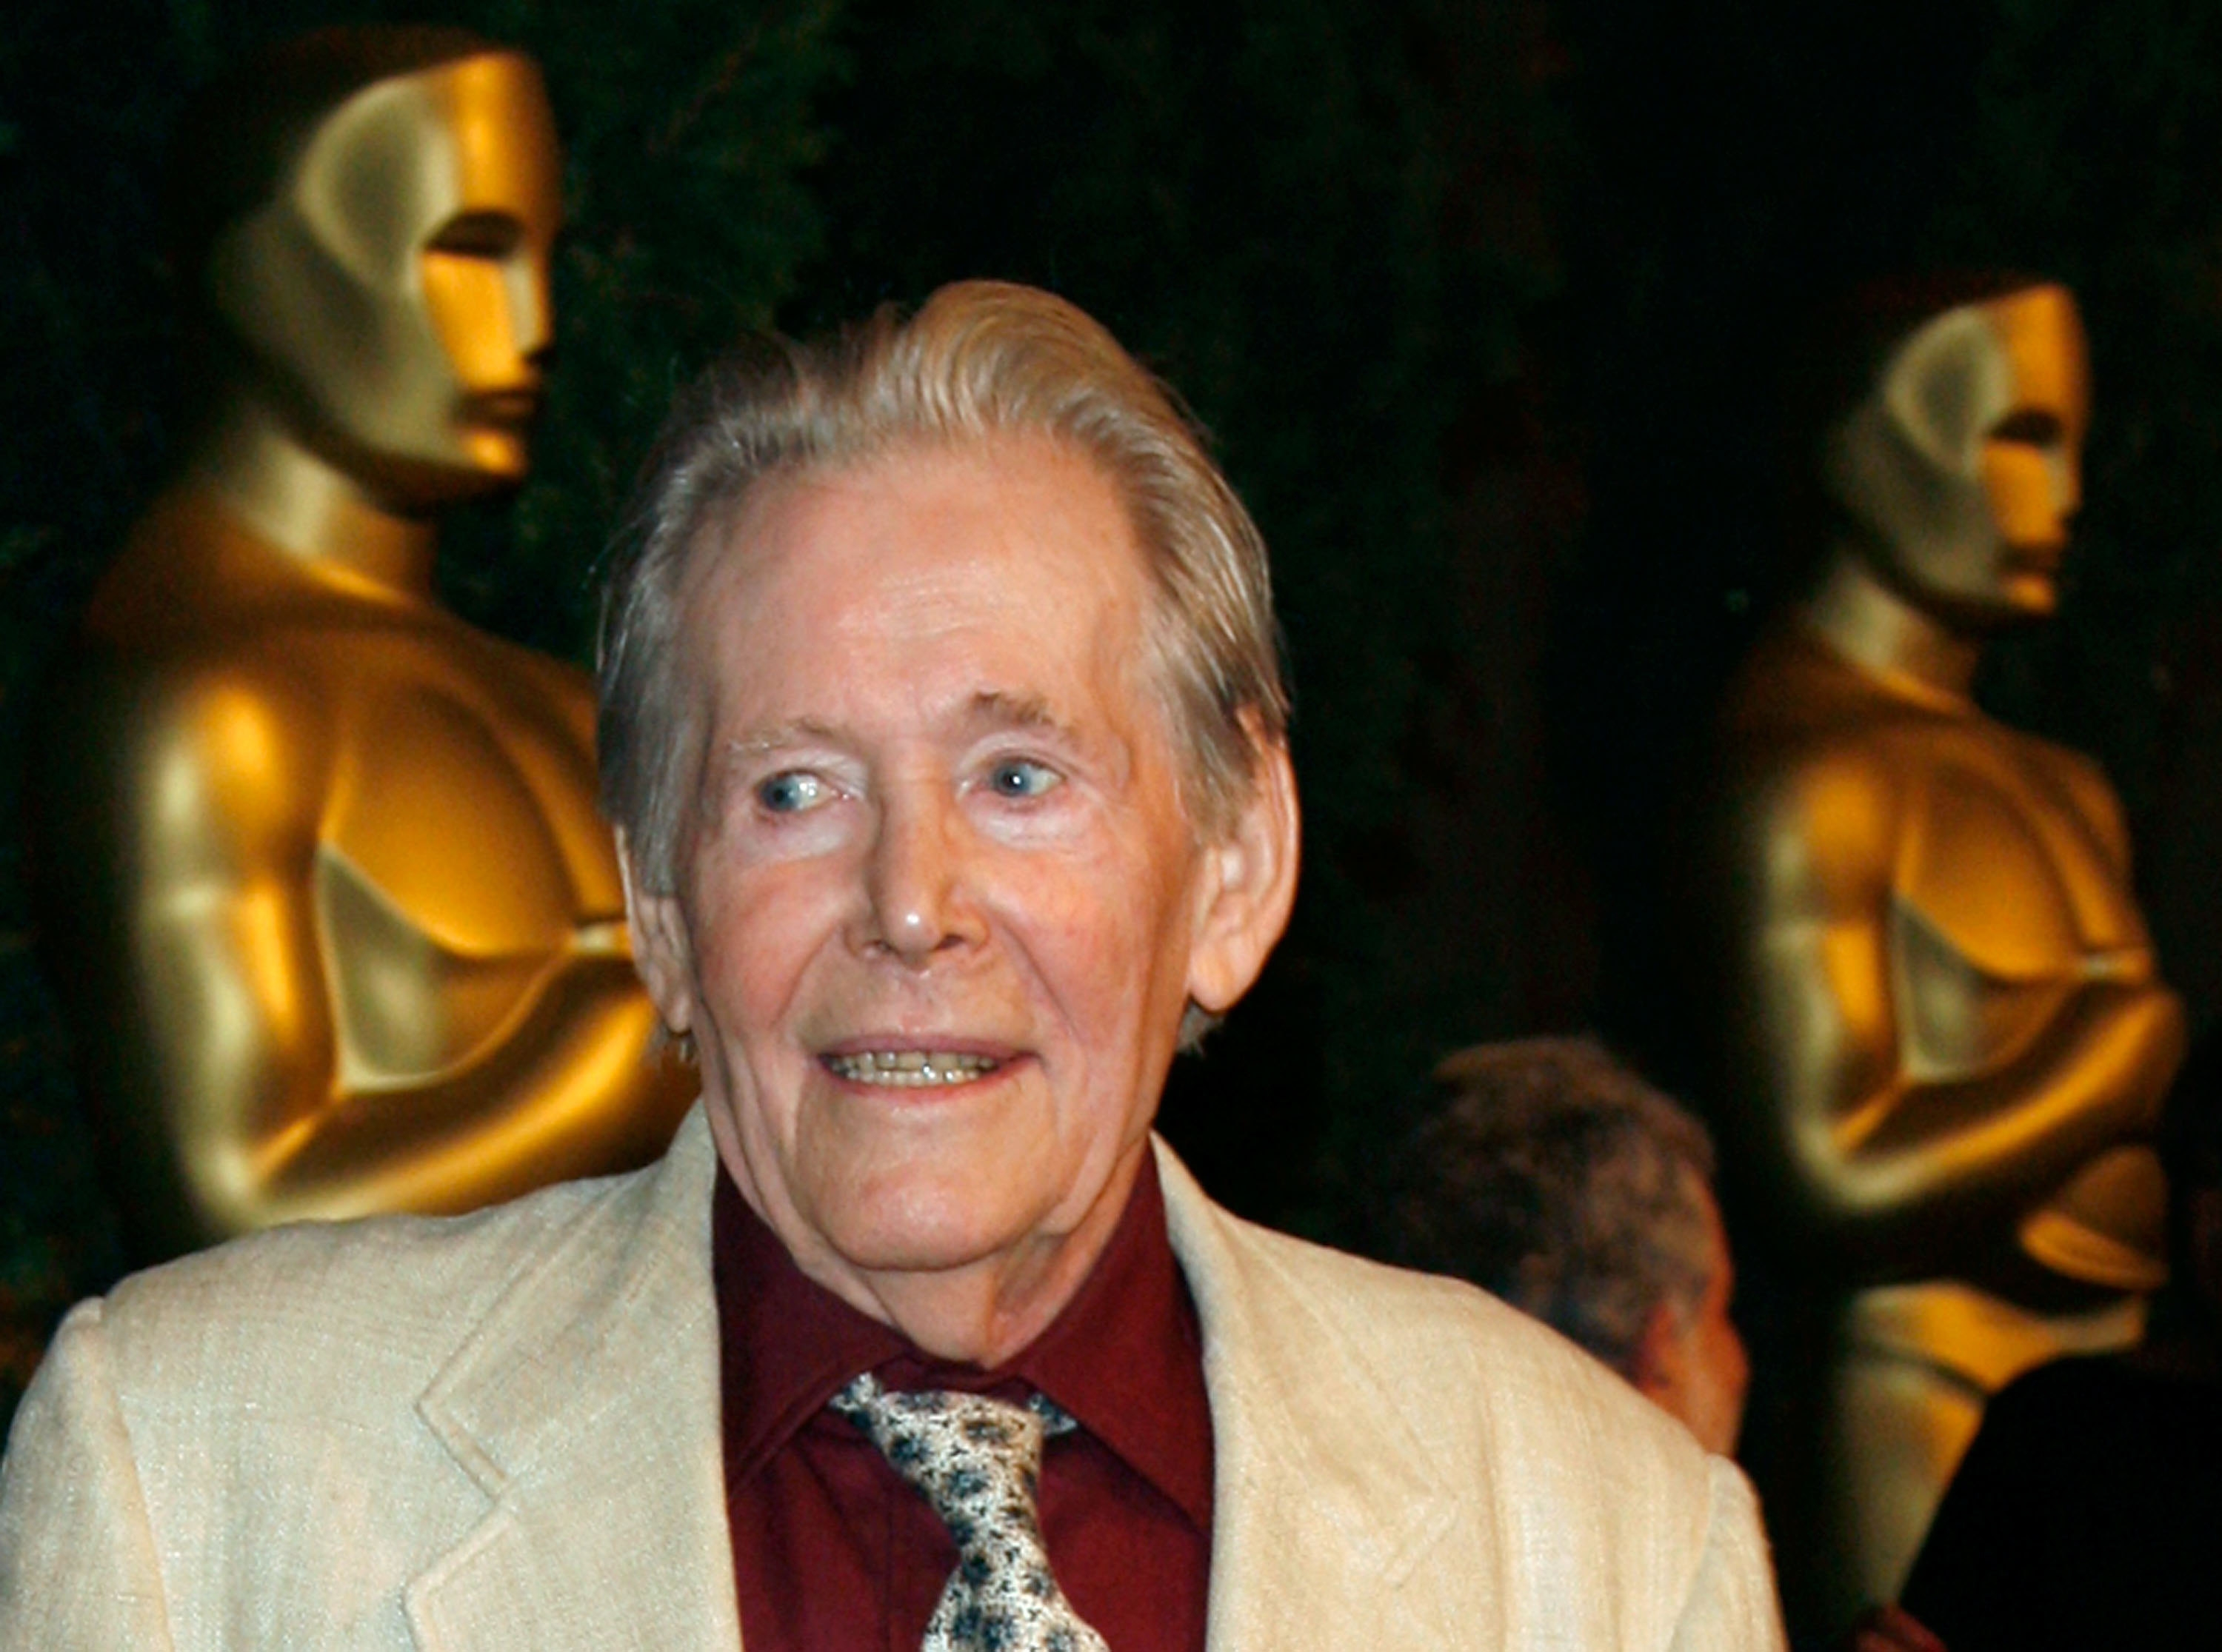 Peter O'Toole attends the 79th annual Academy Award nominees luncheon in 2007 in Beverly Hills, California.